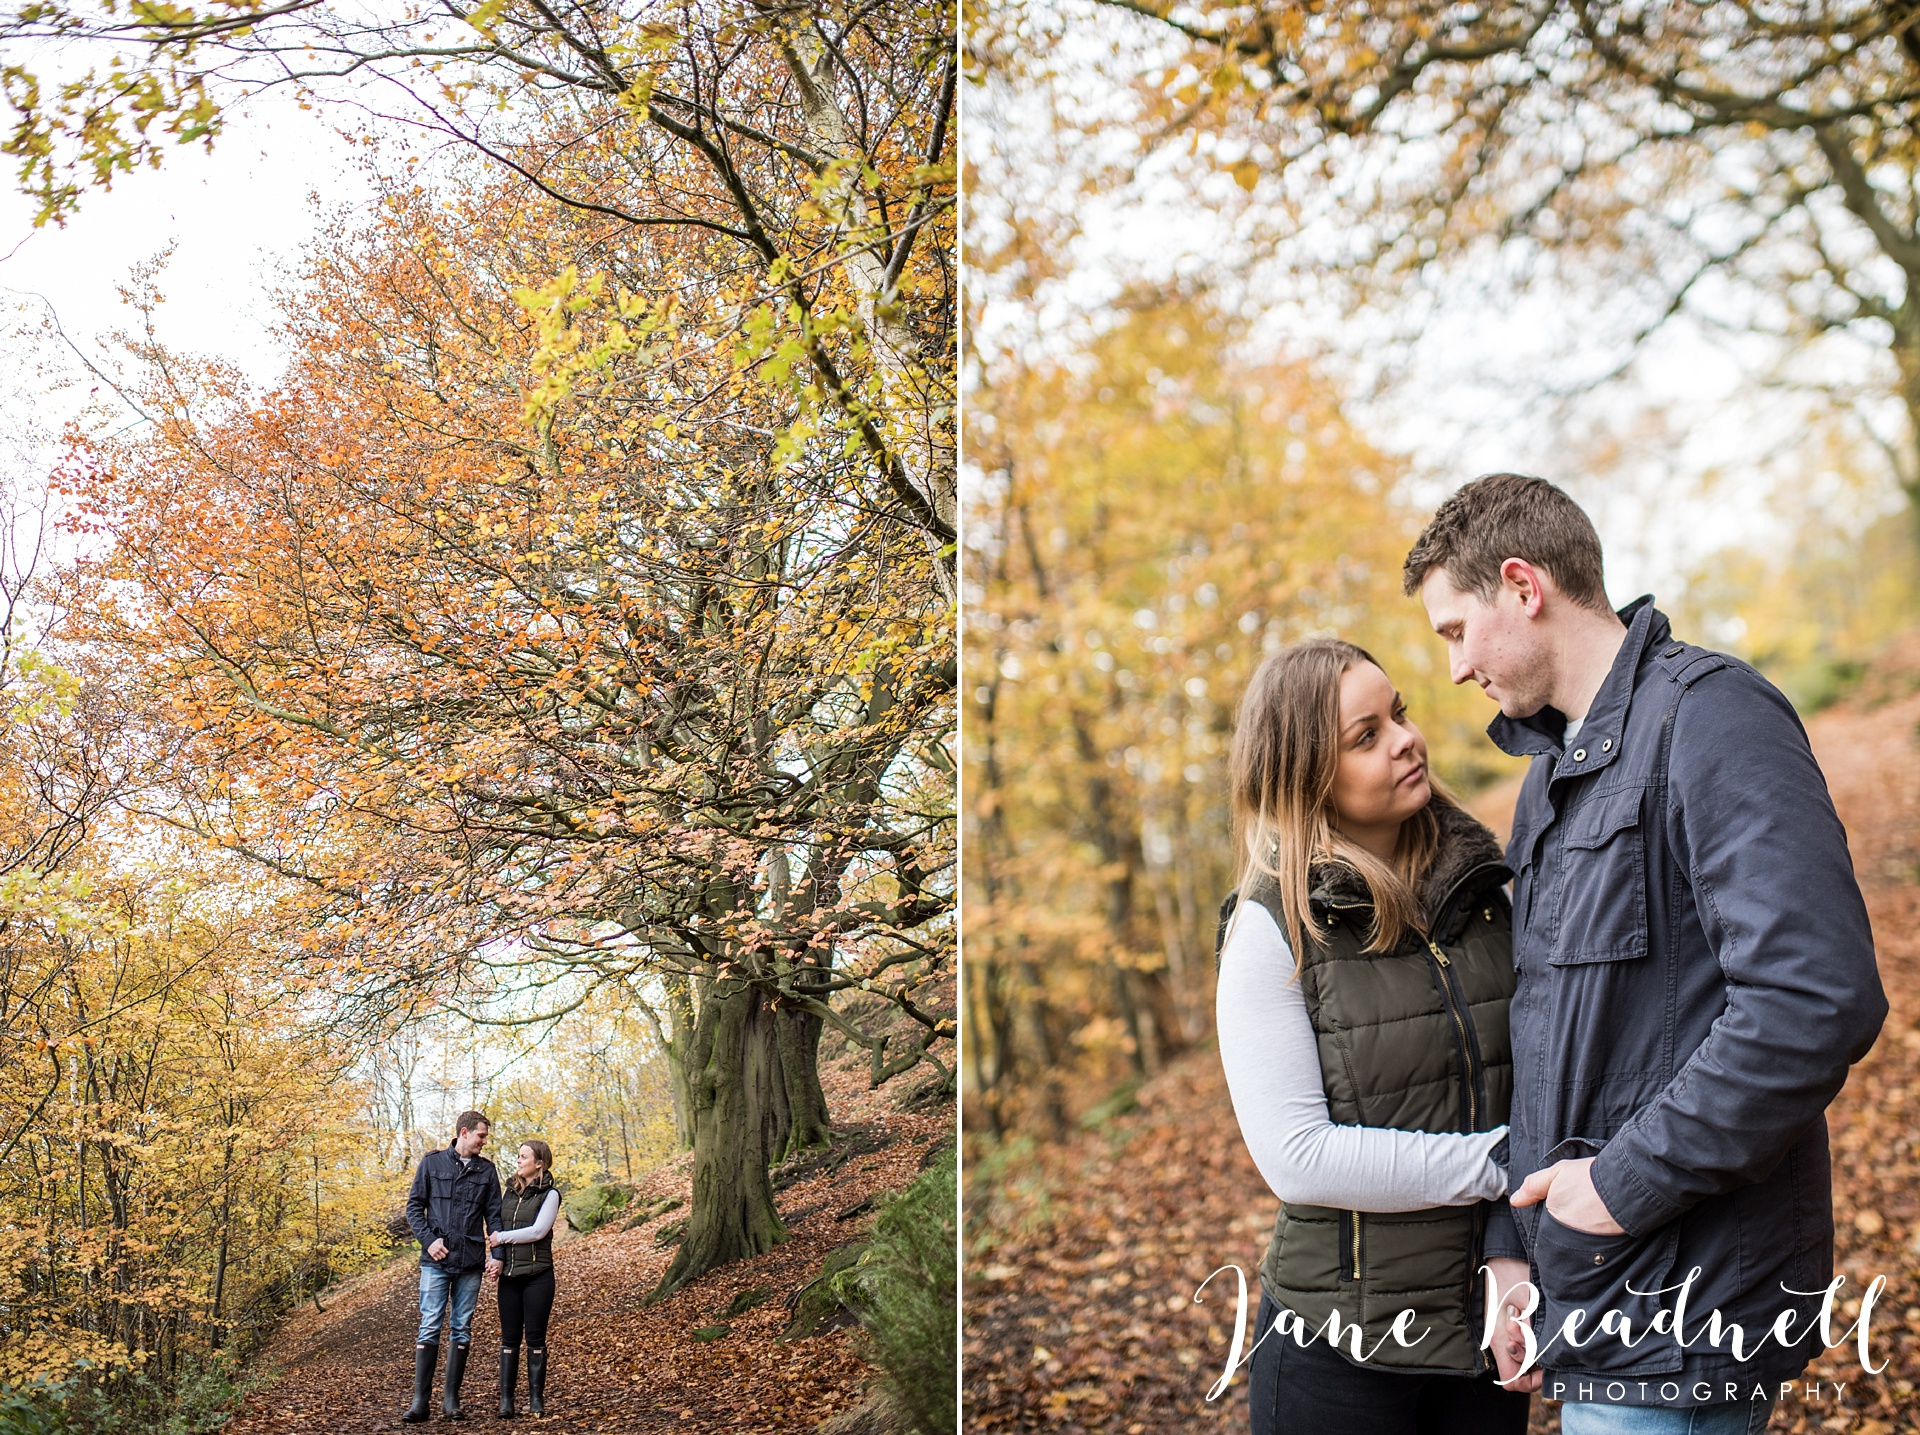 engagement-shoot-yorkshire-wedding-photographer-jane-beadnell-photography-uk-and-destination-wedding-photographer-engagement-shoot_0048